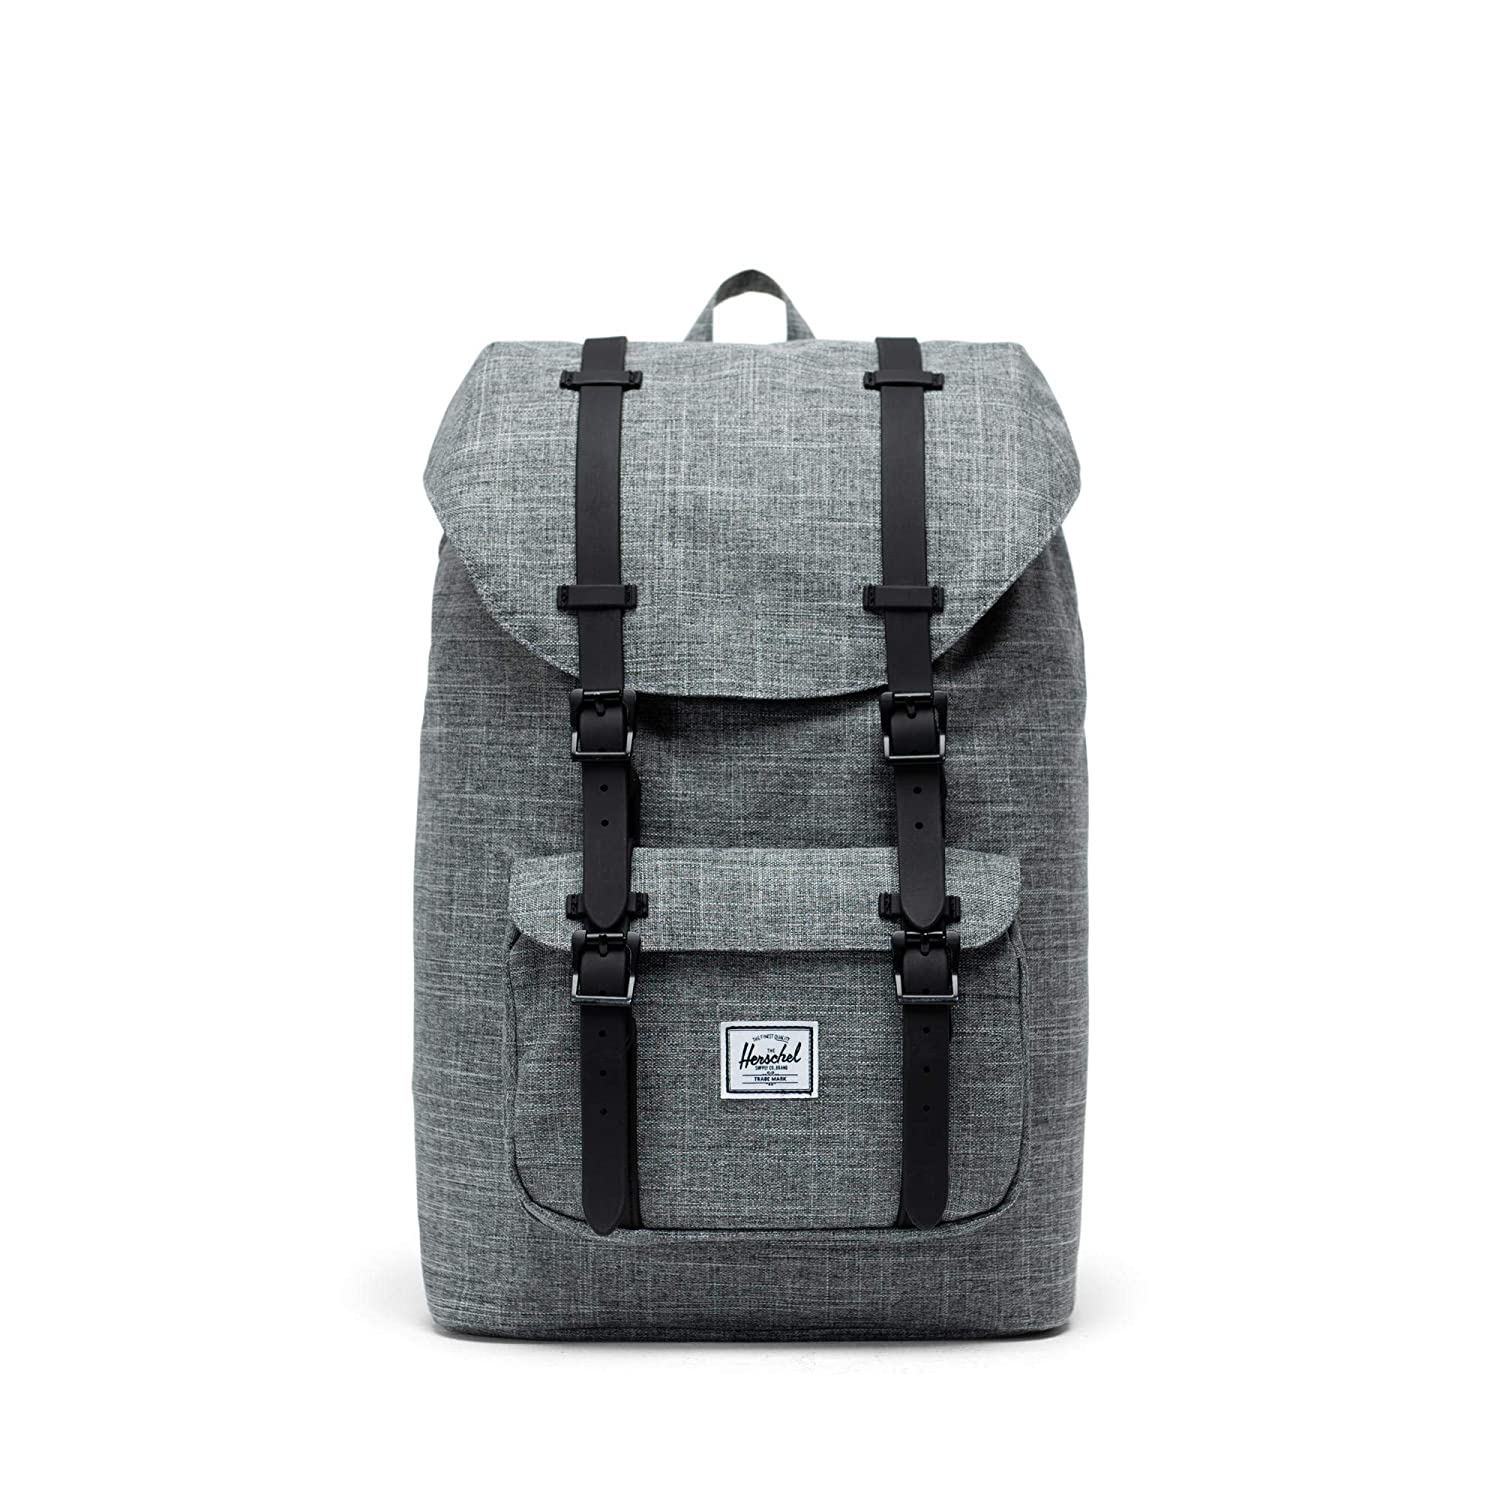 "Herschel Little America Backpack Mid-Volume 17L with 13"" laptop sleeve"